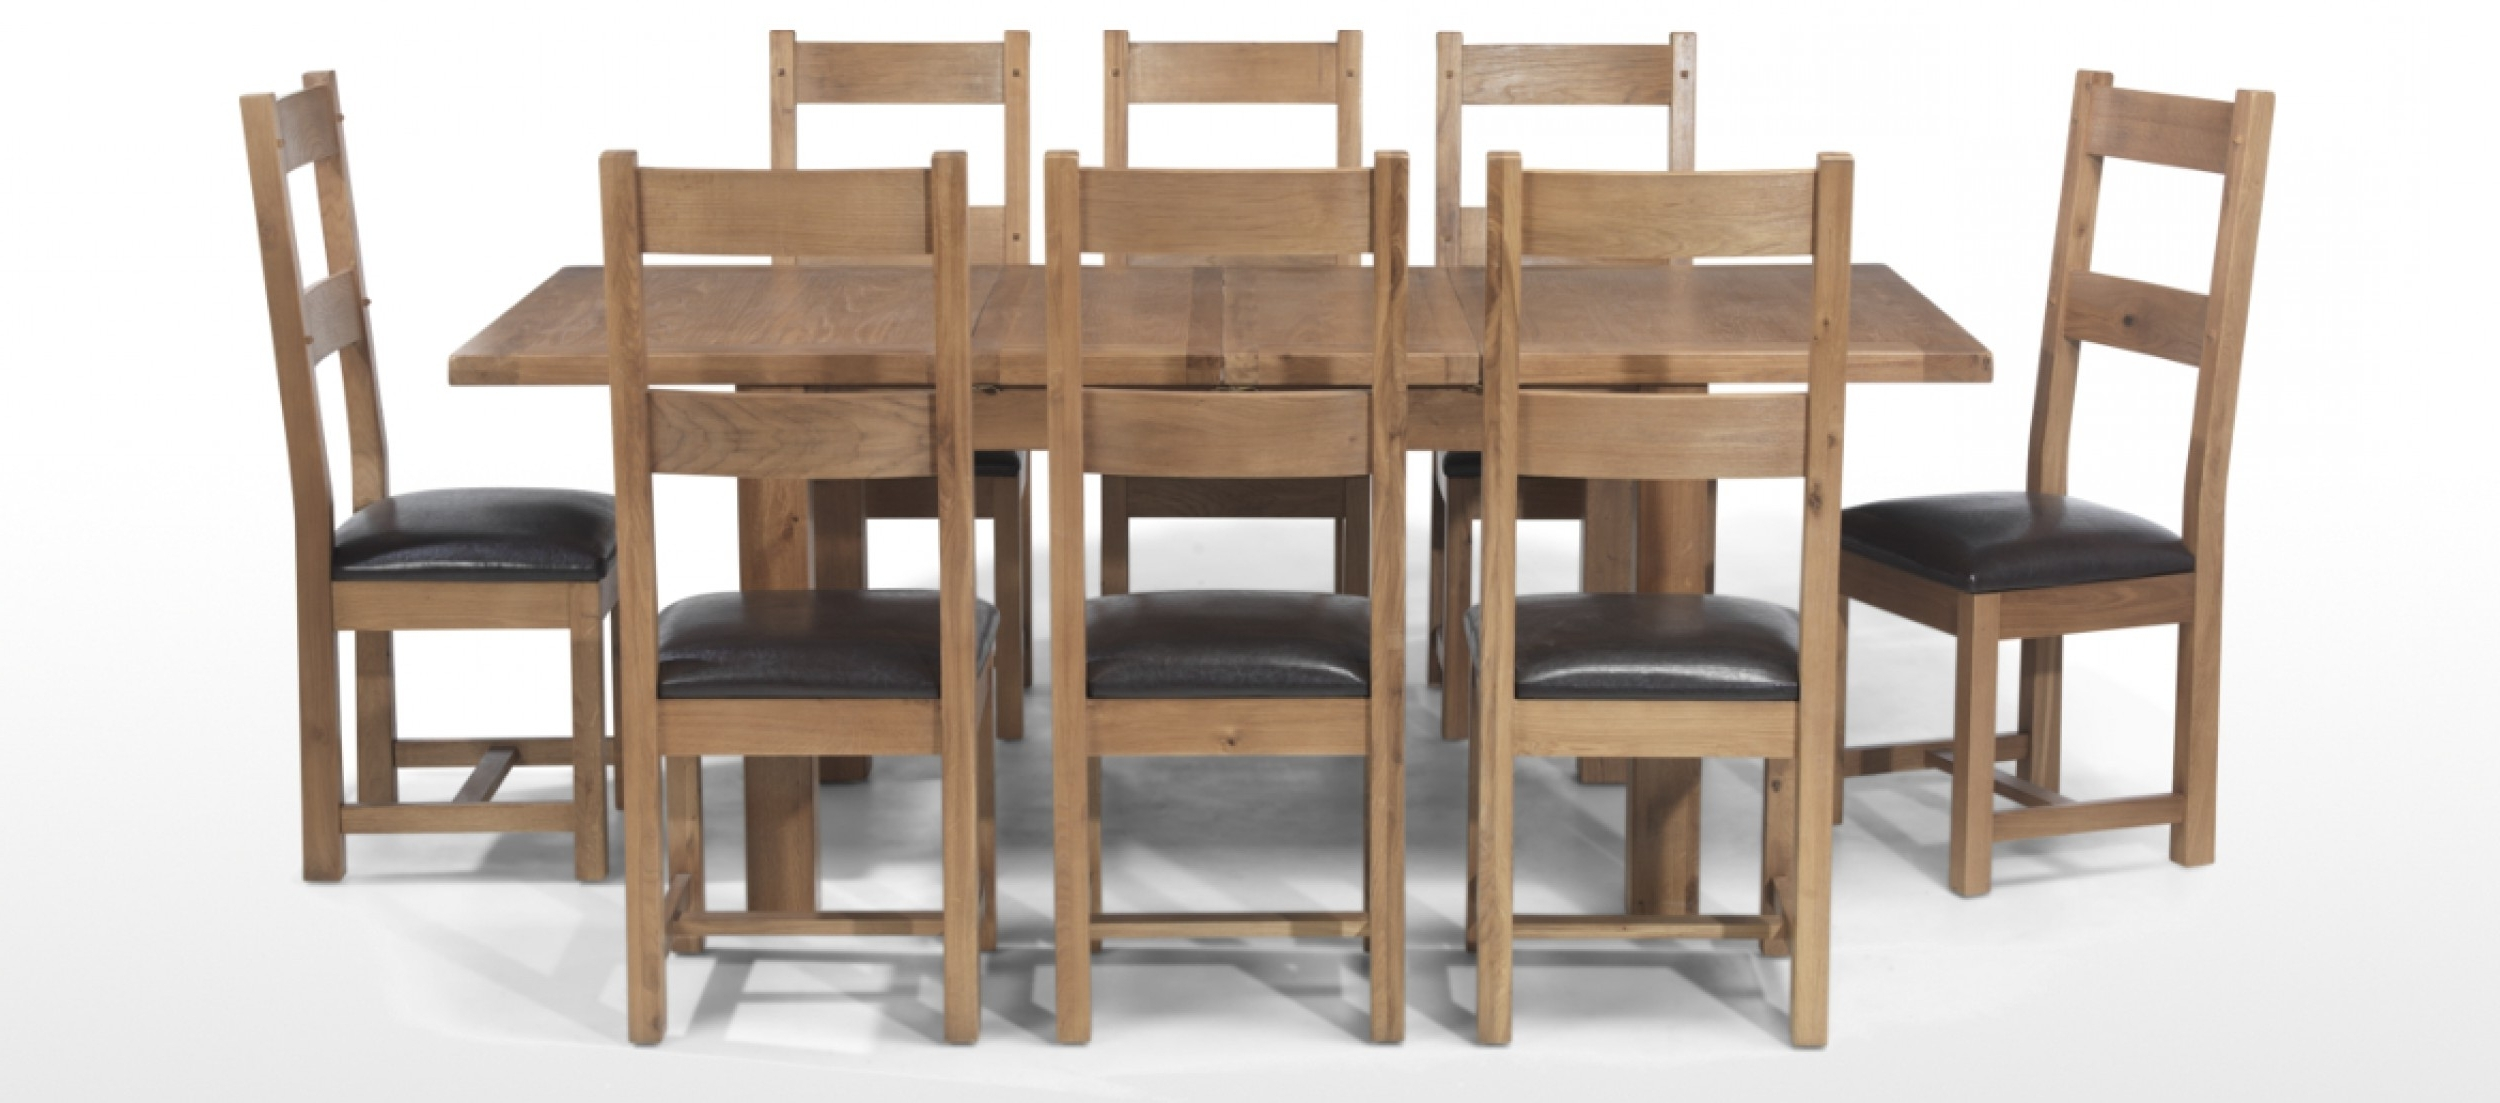 Quercus Pertaining To Extendable Dining Tables With 8 Seats (View 13 of 25)